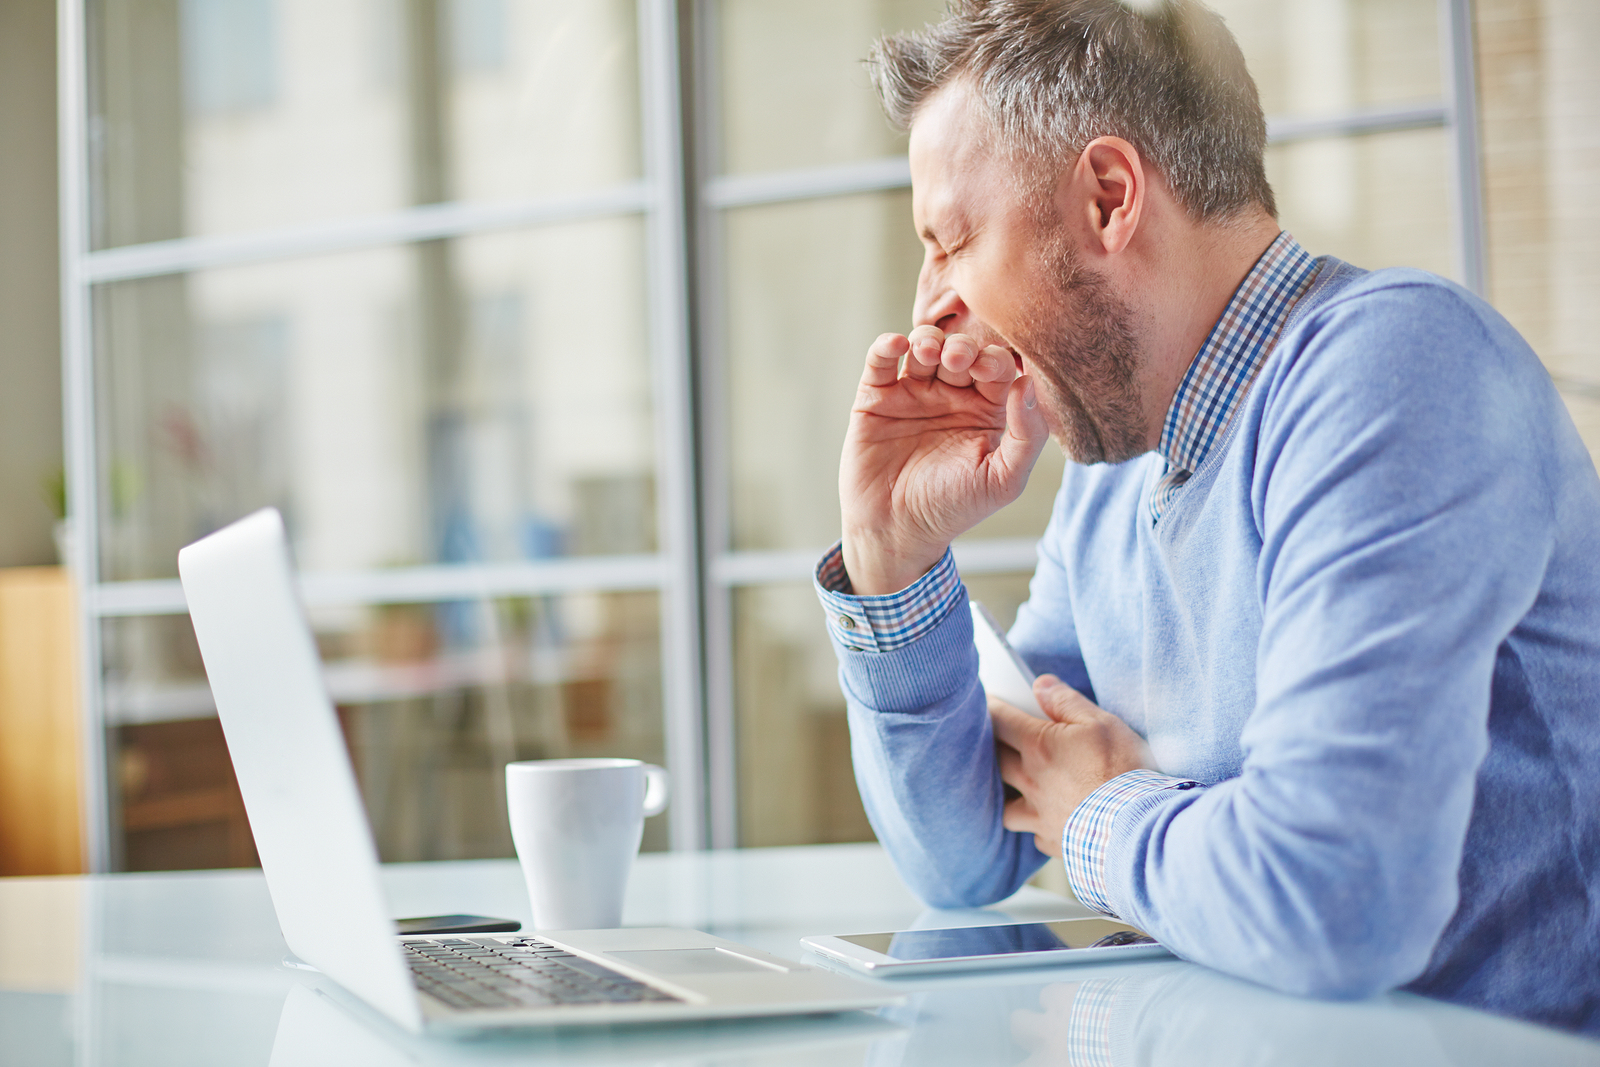 Tired man yawning at workplace in office